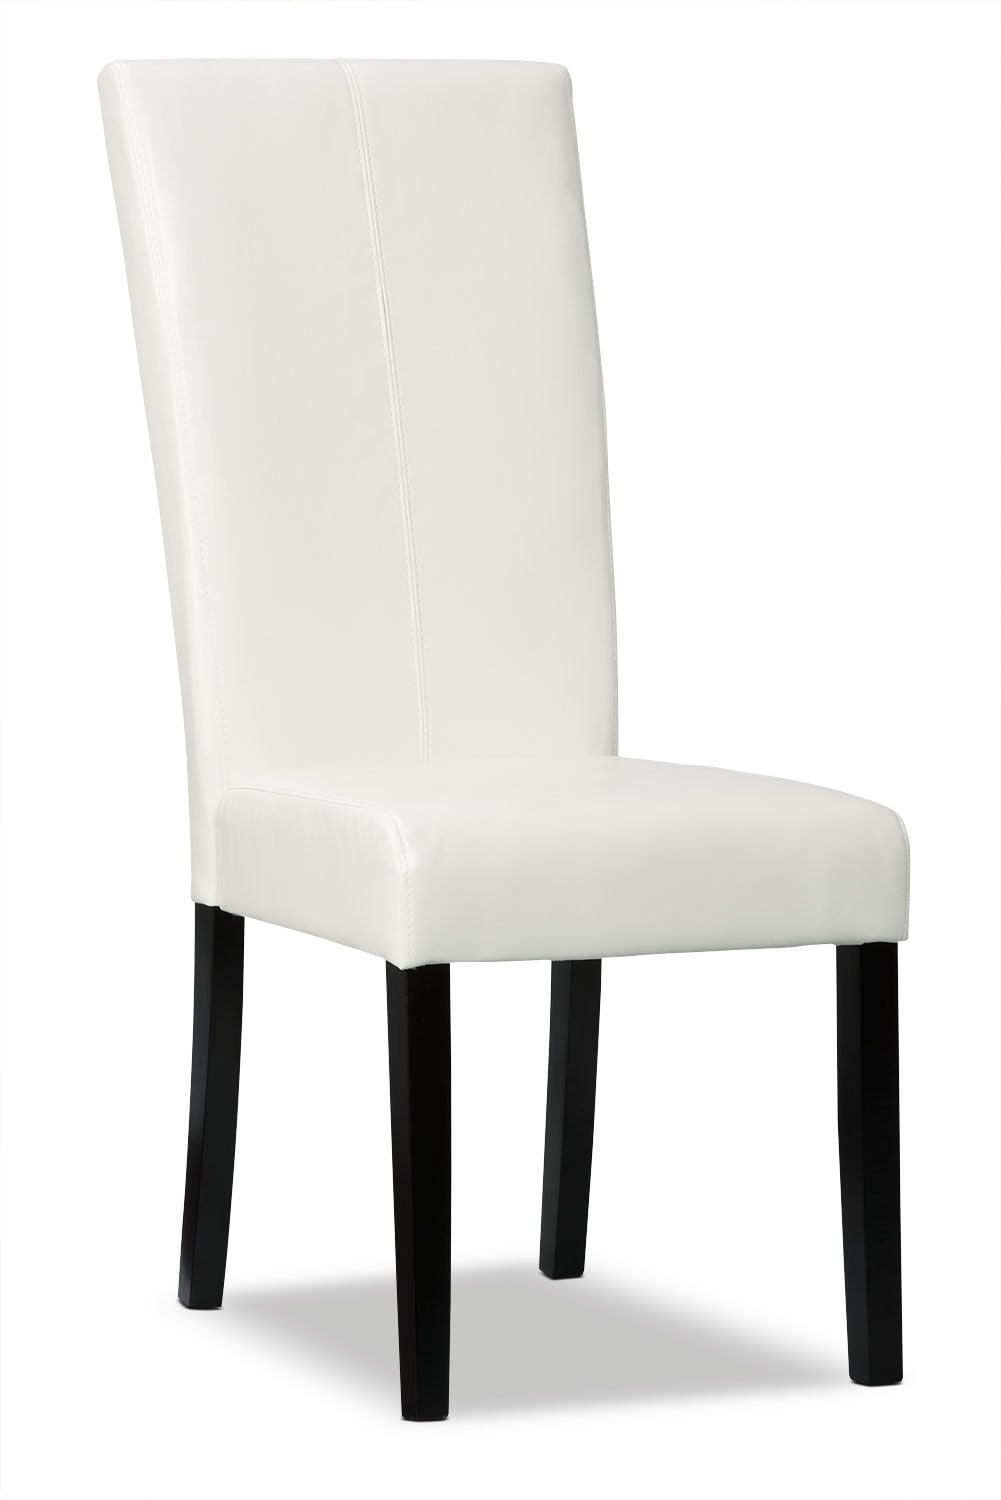 dining chairs  the brick - white dining chair